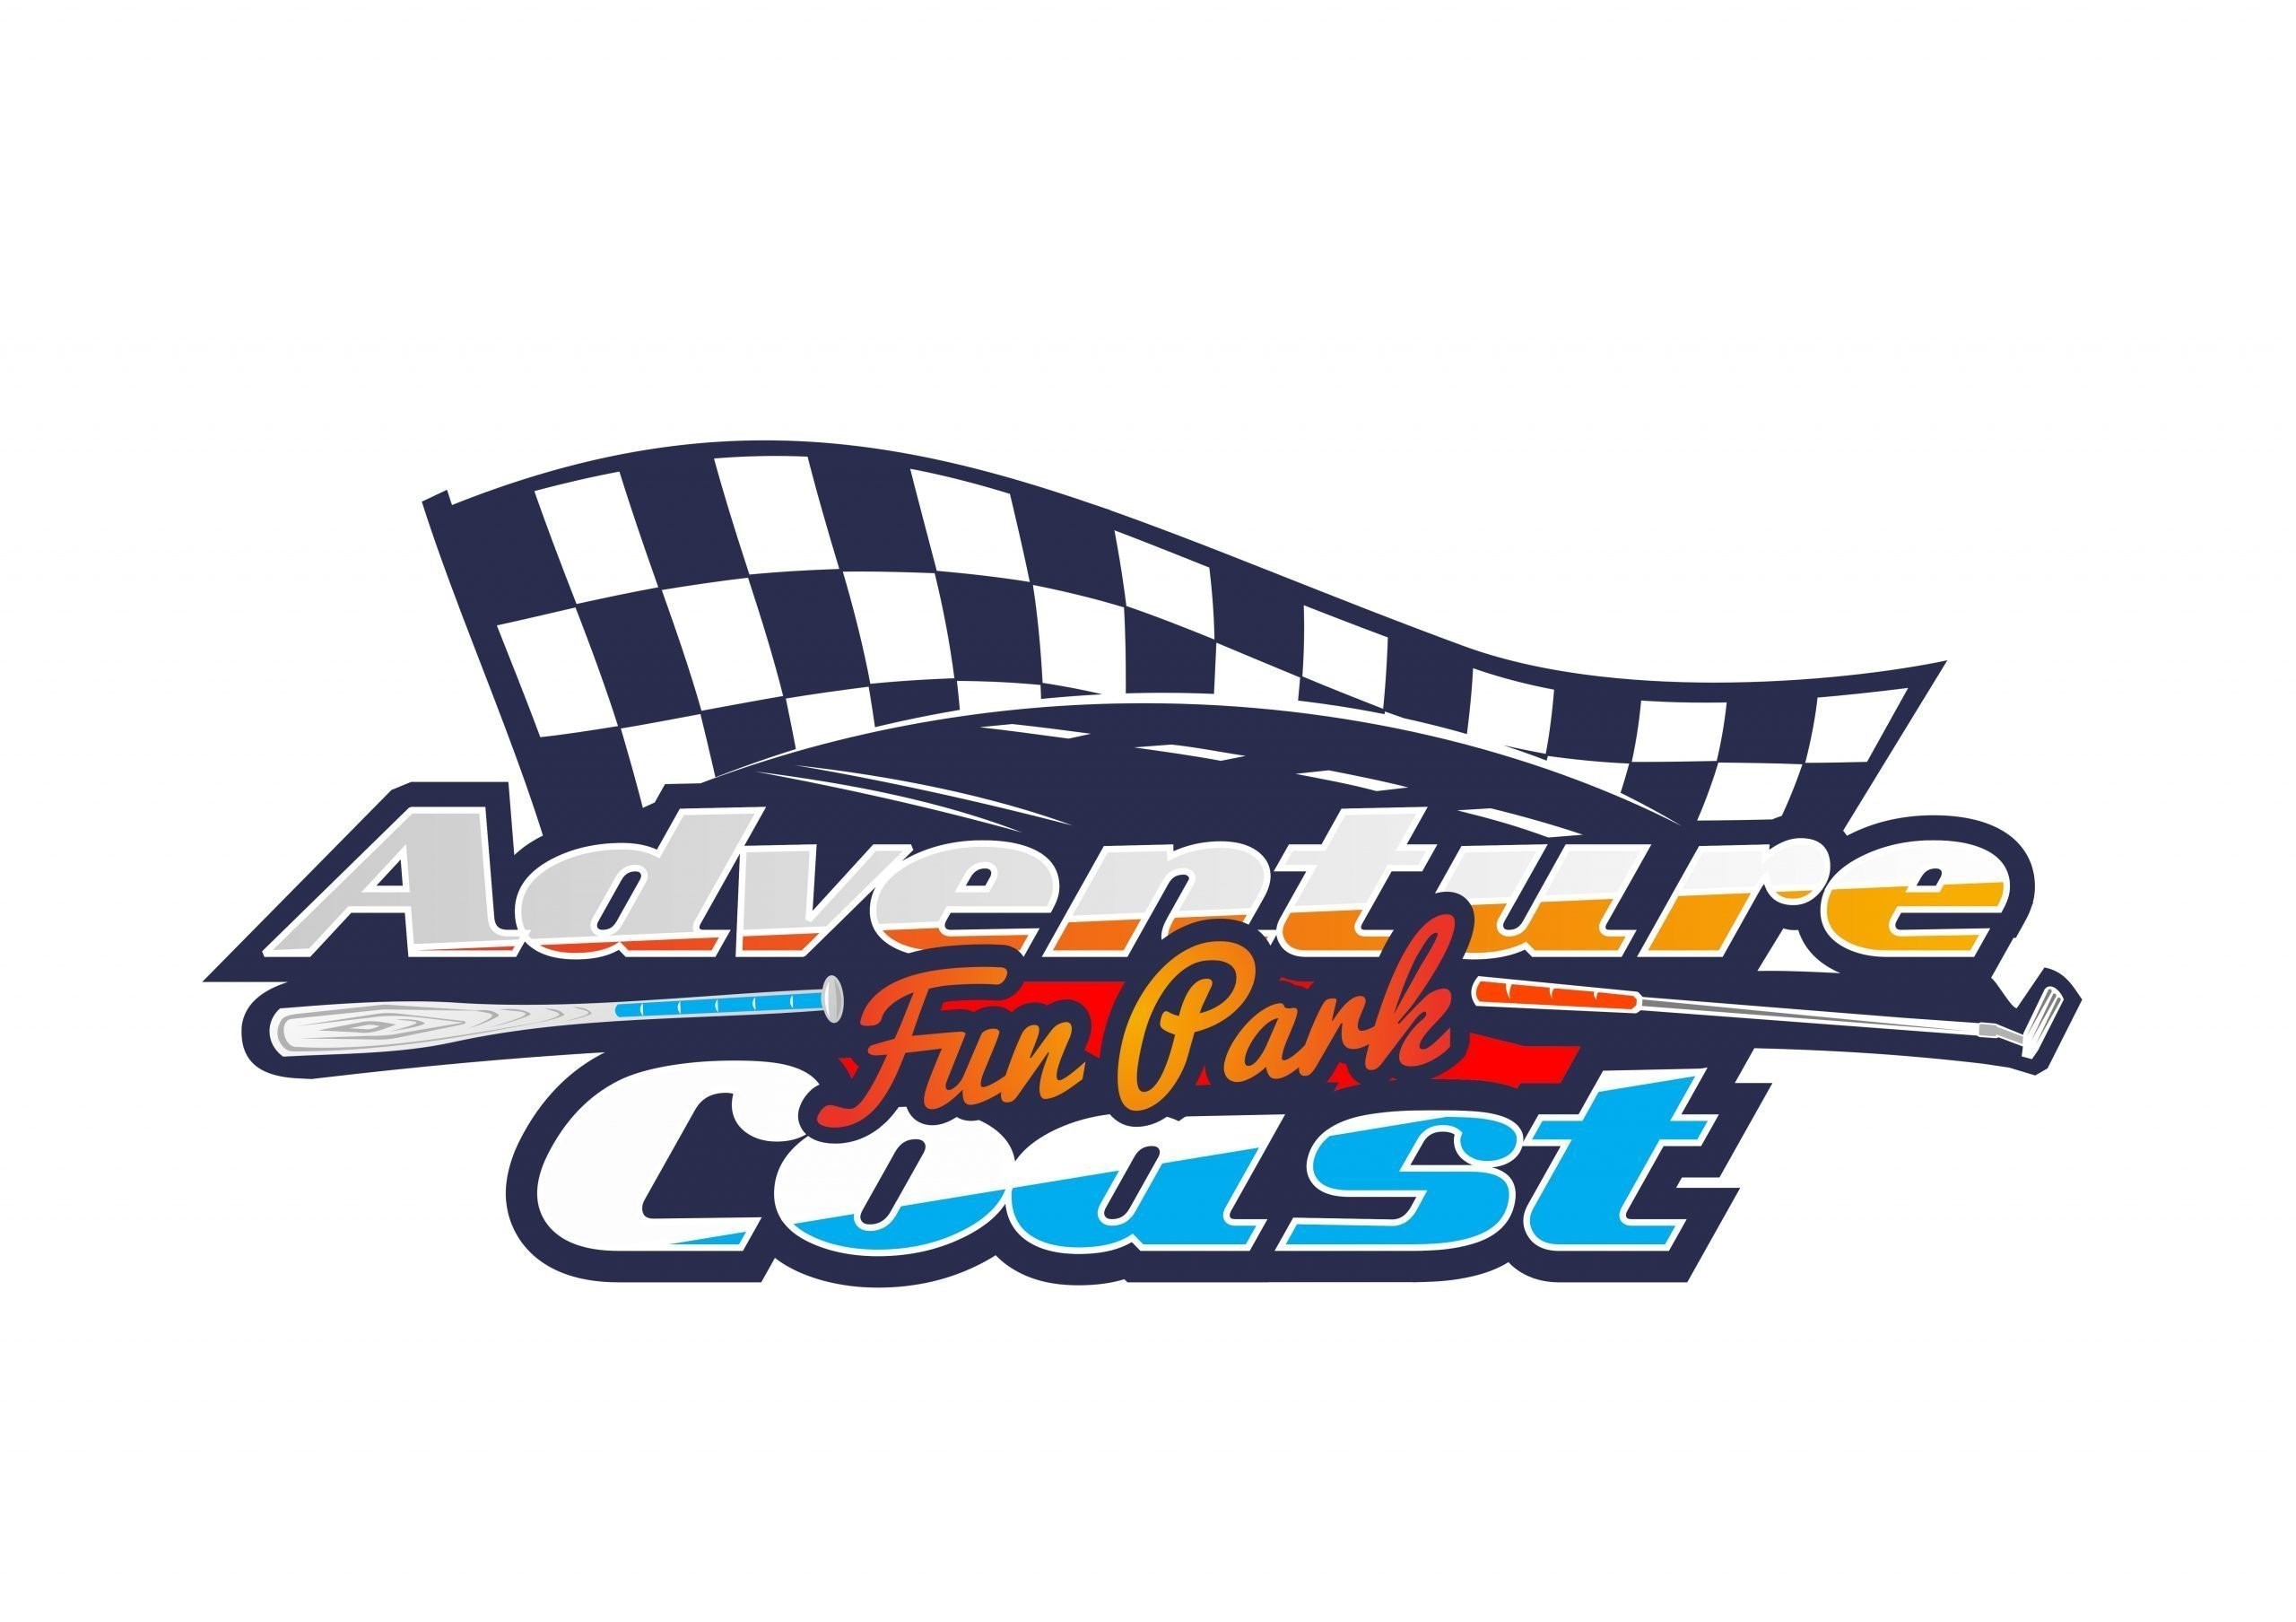 adventure coast fun park - spring hill fl - vermillion enterprises - spring hill gold and coin buyer - serving spring hill